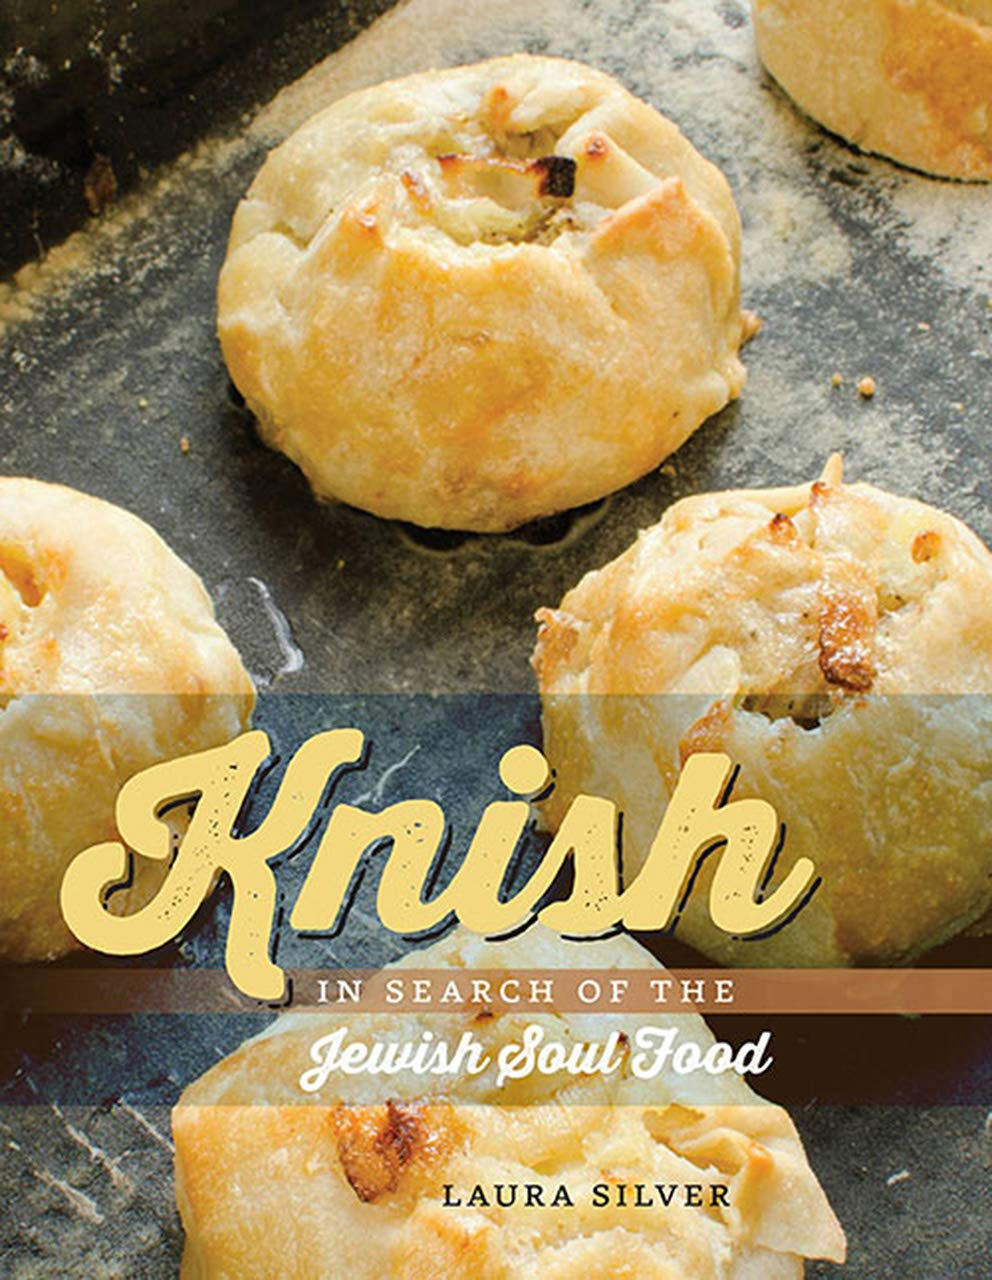 Knish In Search Of The Jewish Soul Food Hbi Series On Jewish Women Silver Laura 9781611683127 Amazon Com Books